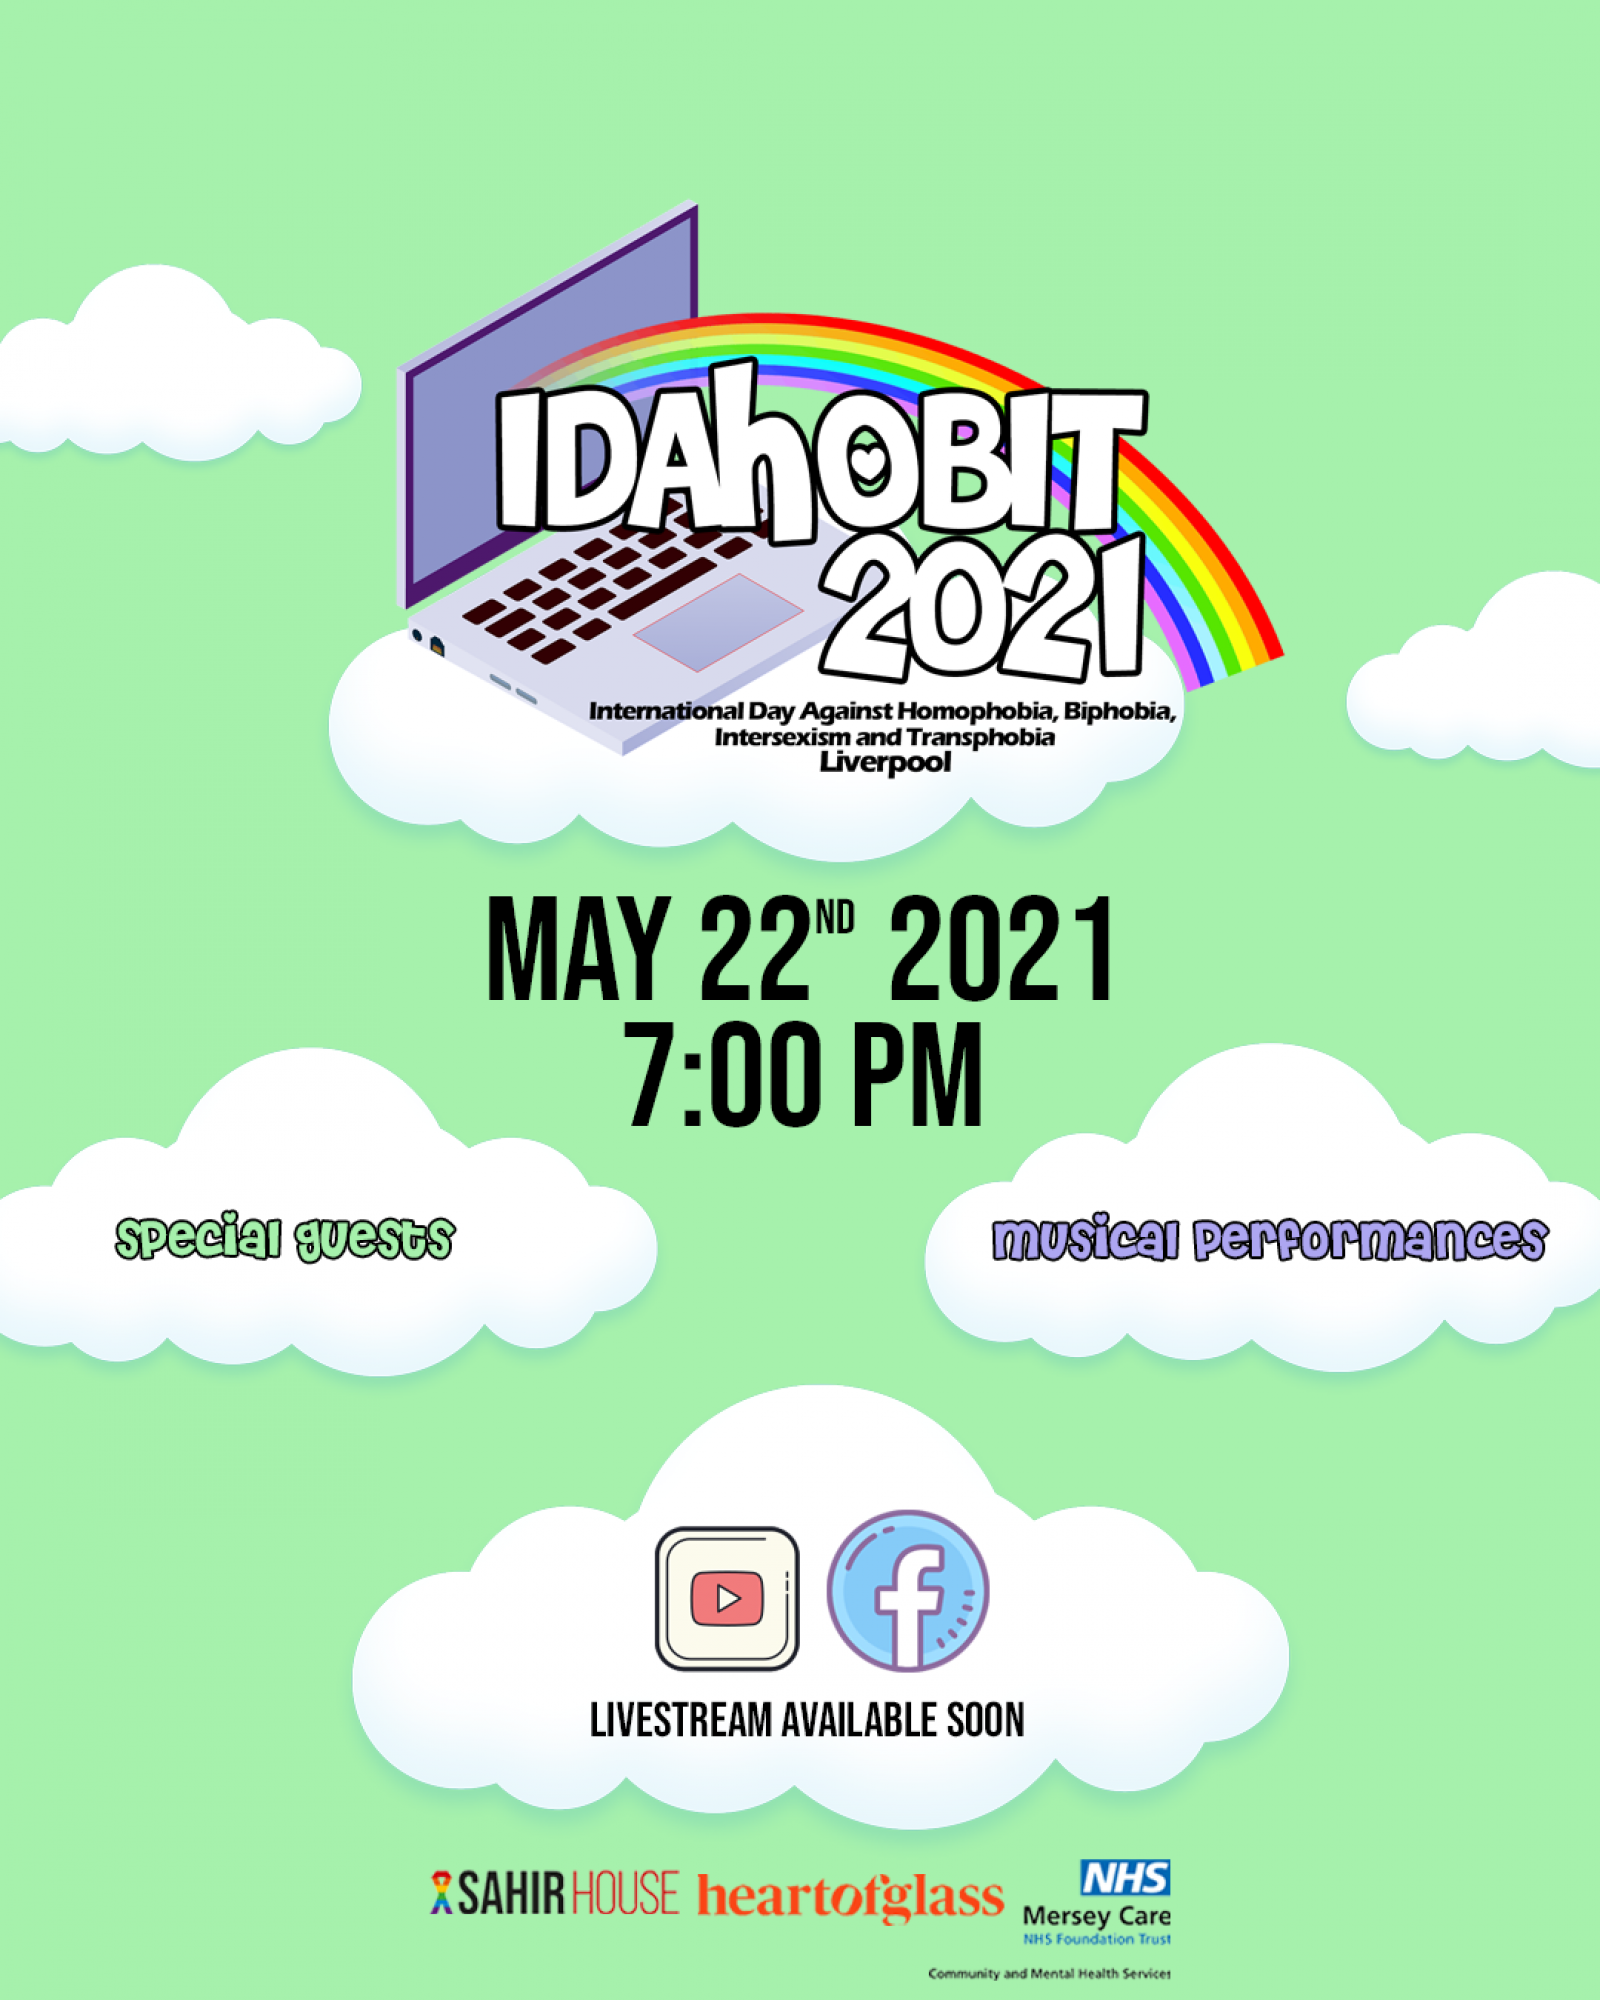 A poster created to promote the IDAHoBIT event. White clouds sit on a light green background. Information about the event are contained in the clouds. At the top, the IDAHoBIT logo for the event sits on a large cloud. The logo comprises of a rainbow leaping out from a computer and contains the text 'IDAHoBIT 2021'